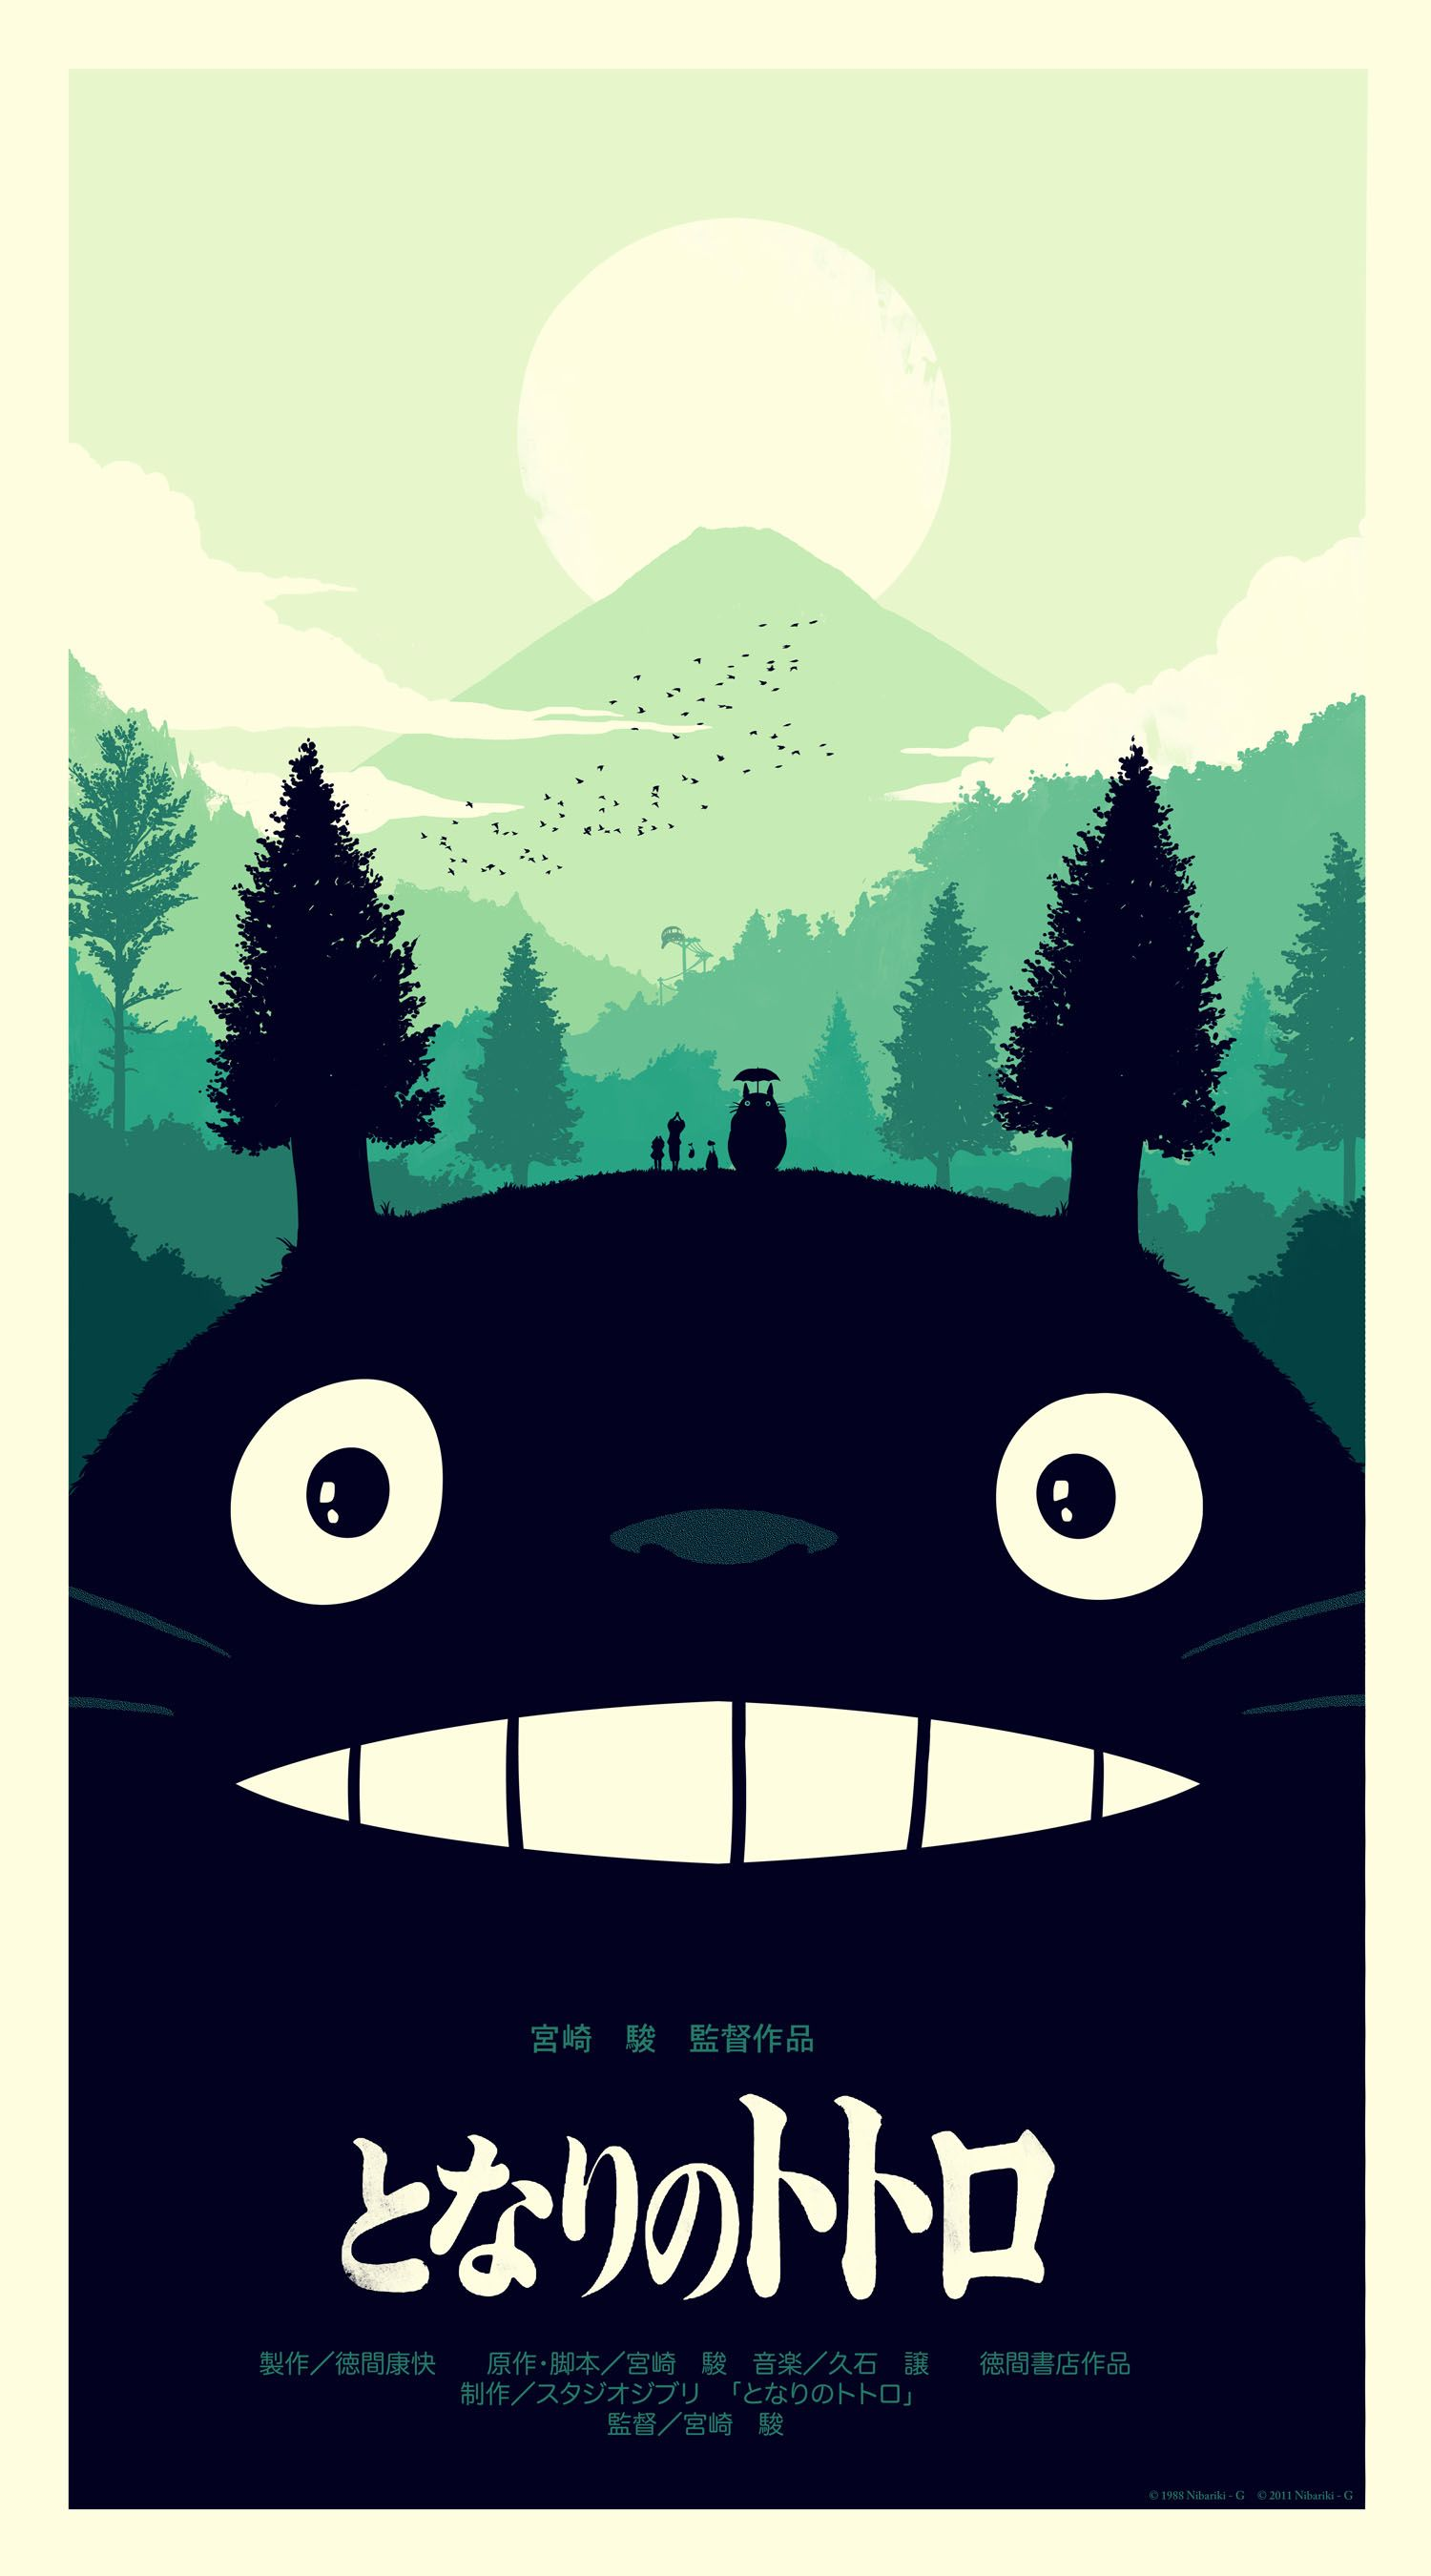 Love, love, love how this poster eludes how Totoro is an embedded spirit of the forest.